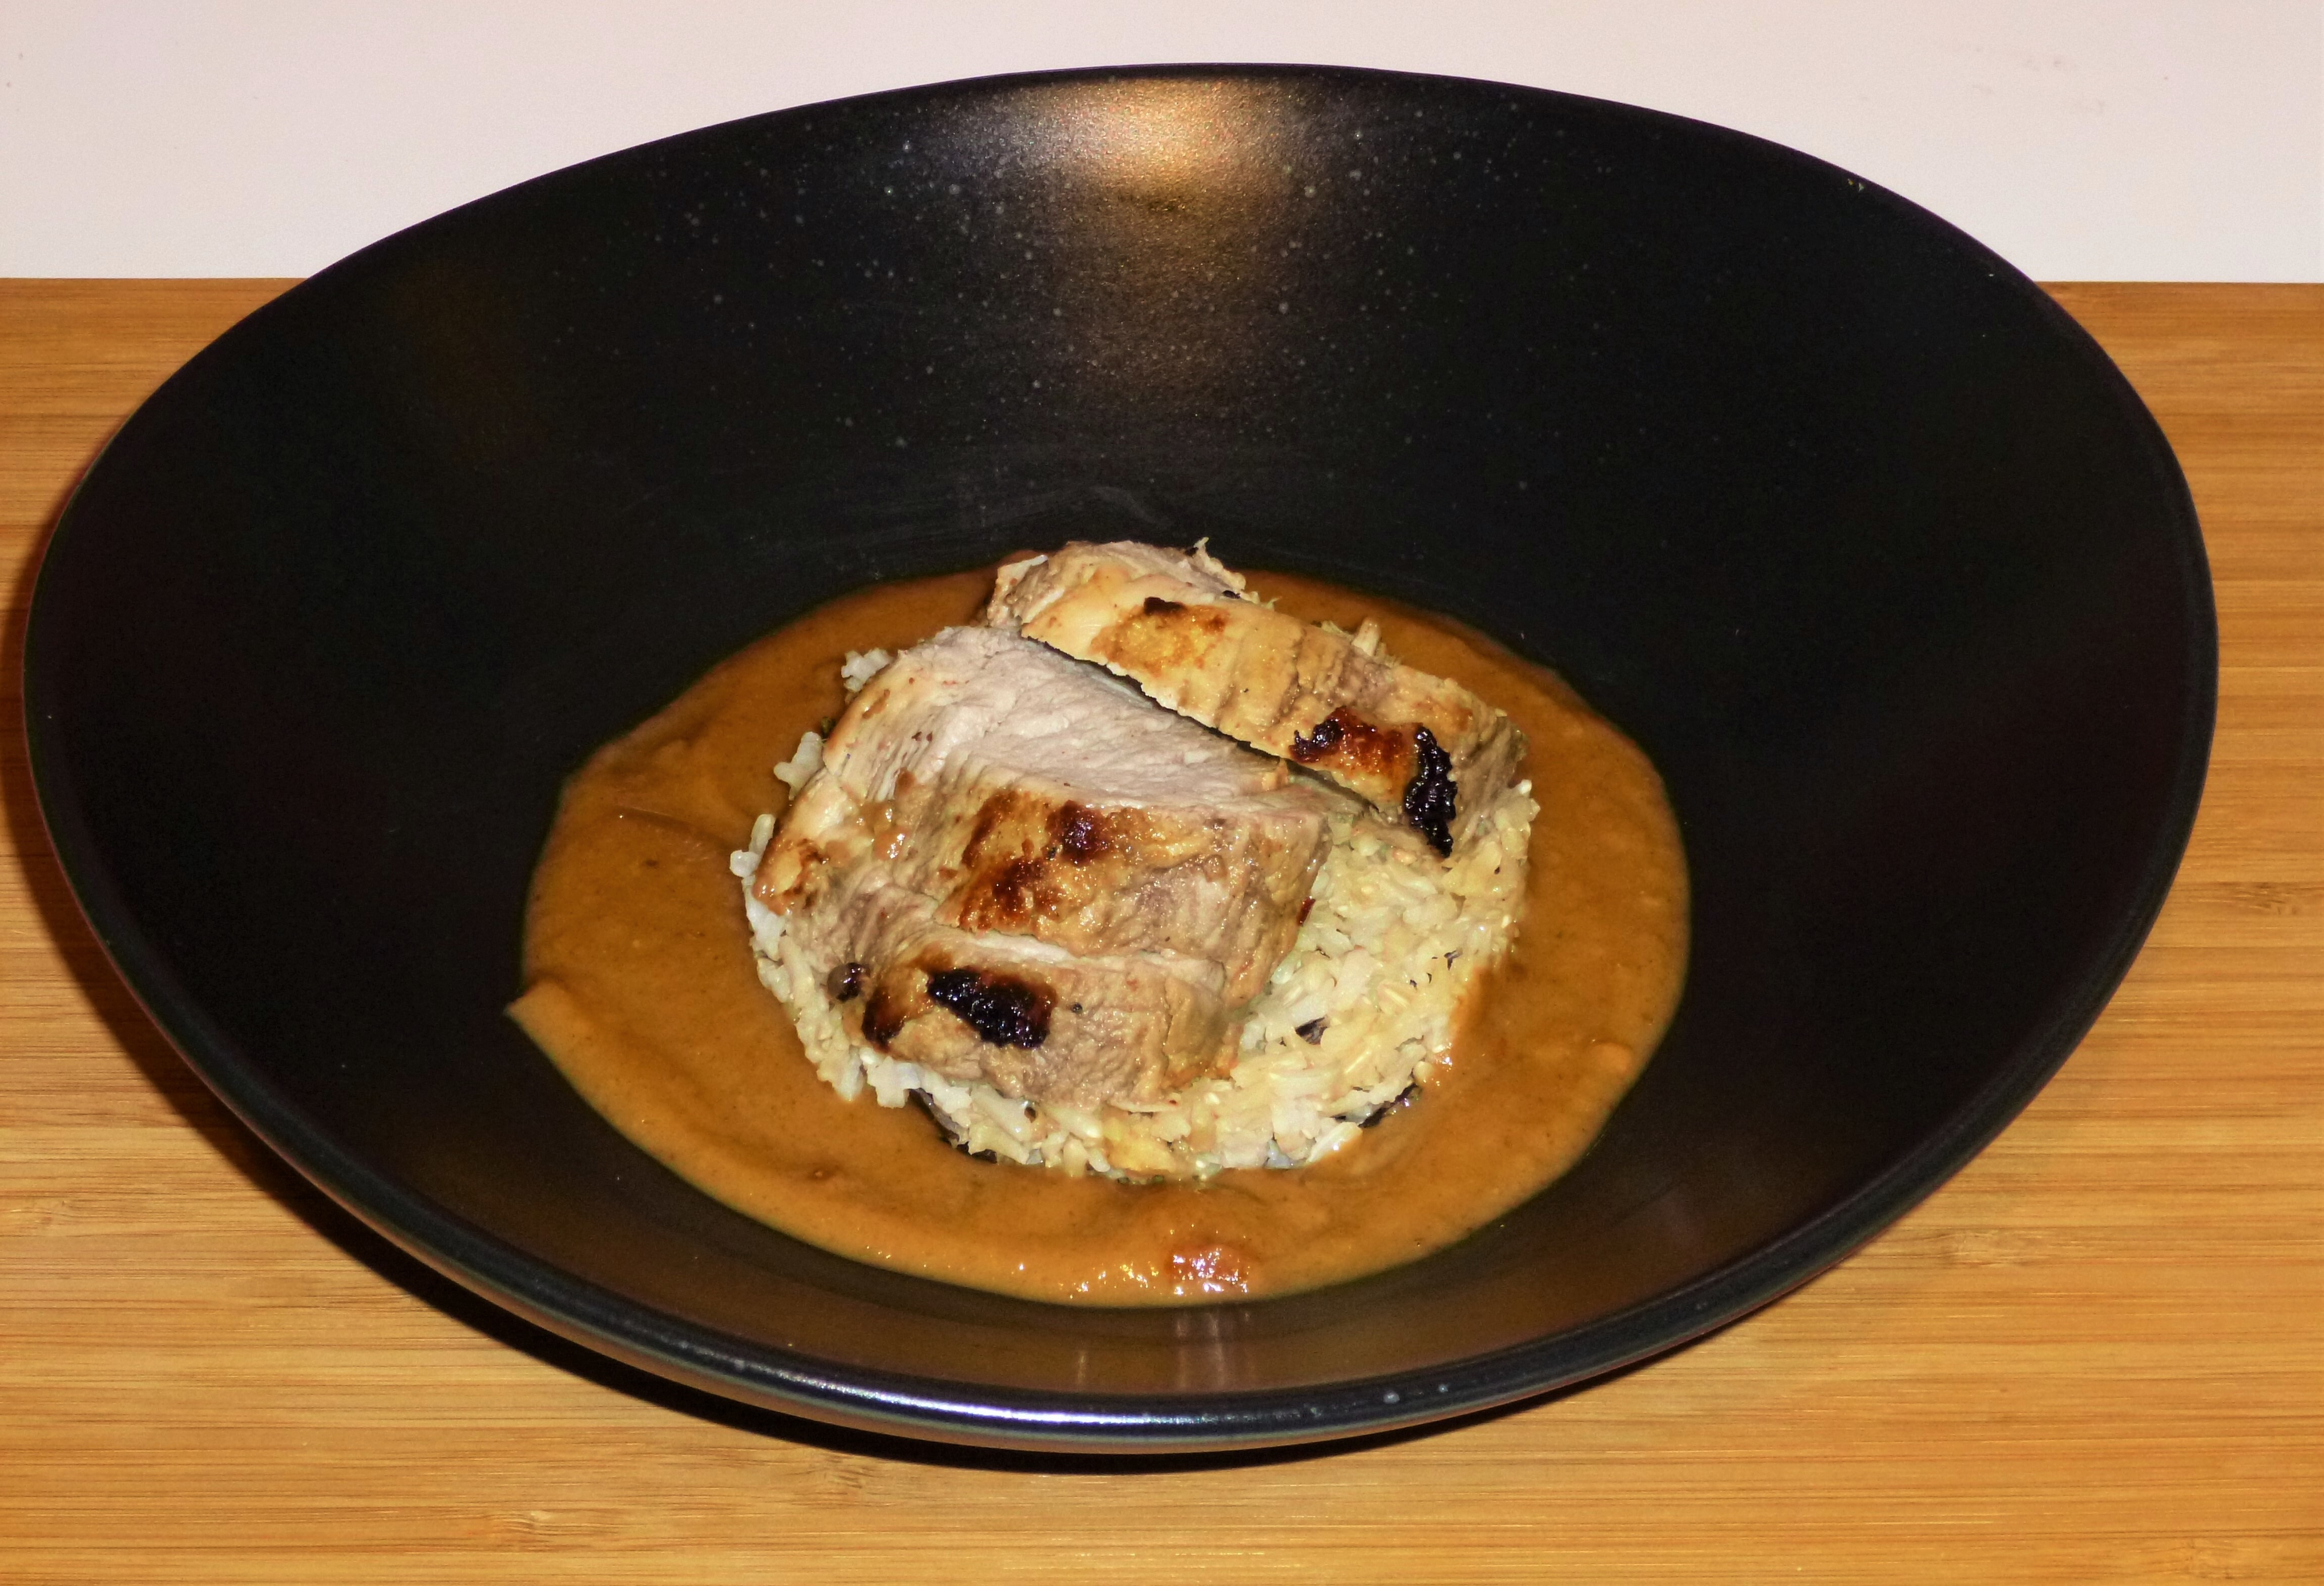 Balinese Marinated Roasted Pork Fillet with a Peanut Butter Gravy and Wild Rice Recipe